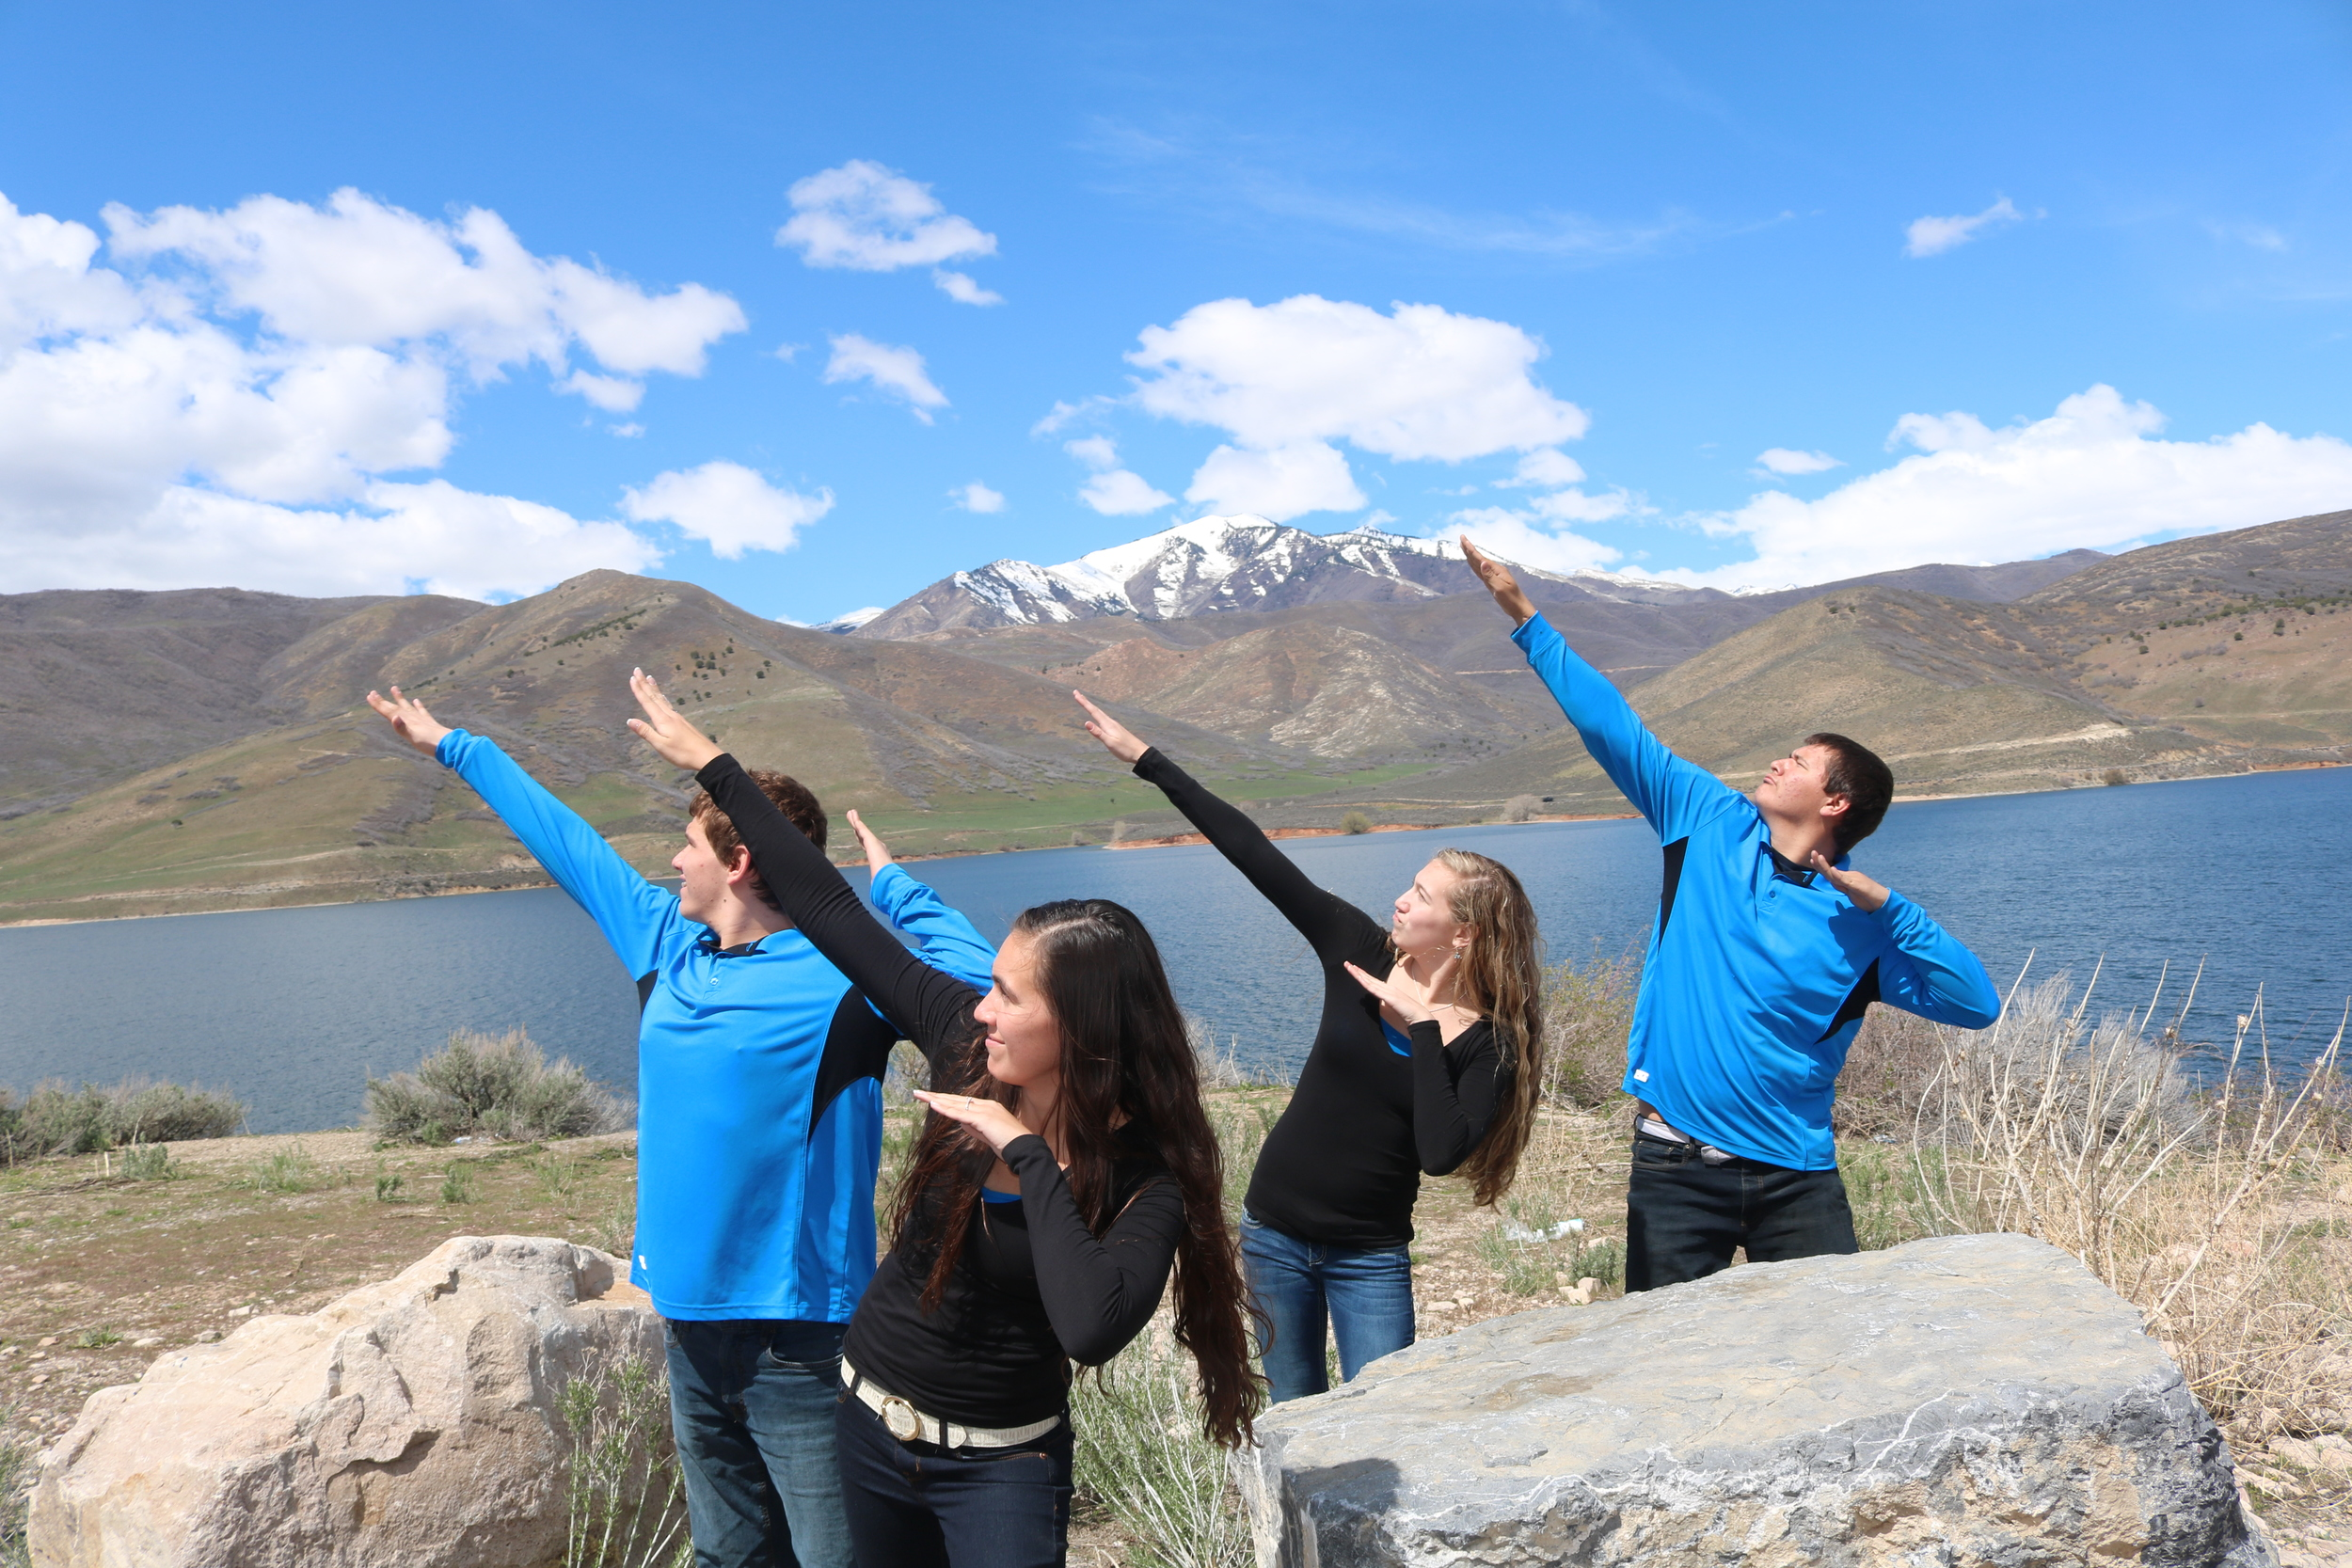 """April 2016 Koleden, Brenna, Taylee, and Kyler. Provo Canyon. The kids have fun with a """"cousin pose."""" We were taking family pictures. Our kids tend to find """"fun"""" where ever they are. We have been on many vacations that have been cry or laugh and we have chosen to laugh. The girls have learned to be great sports about it. Brenna is getting married in October and we are fortunate to be gaining another wonderful son."""